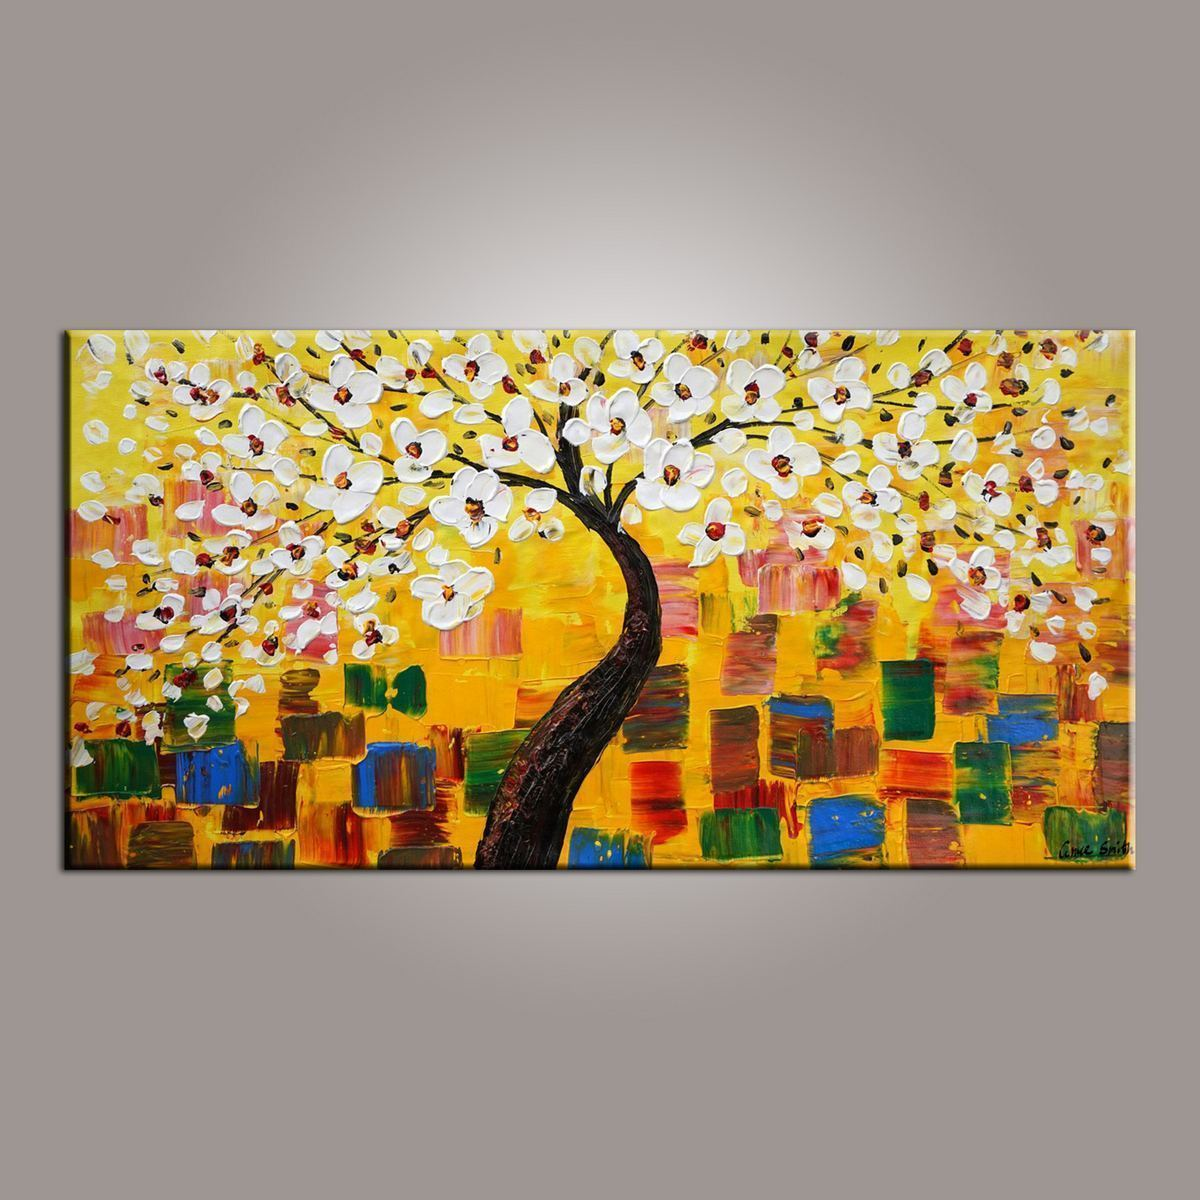 Painting on Sale, Flower Tree Painting, Abstract Art Painting, Canvas Wall Art, Dining Room Wall Art, Canvas Art, Modern Art, Contemporary Art - LargePantingArt.com